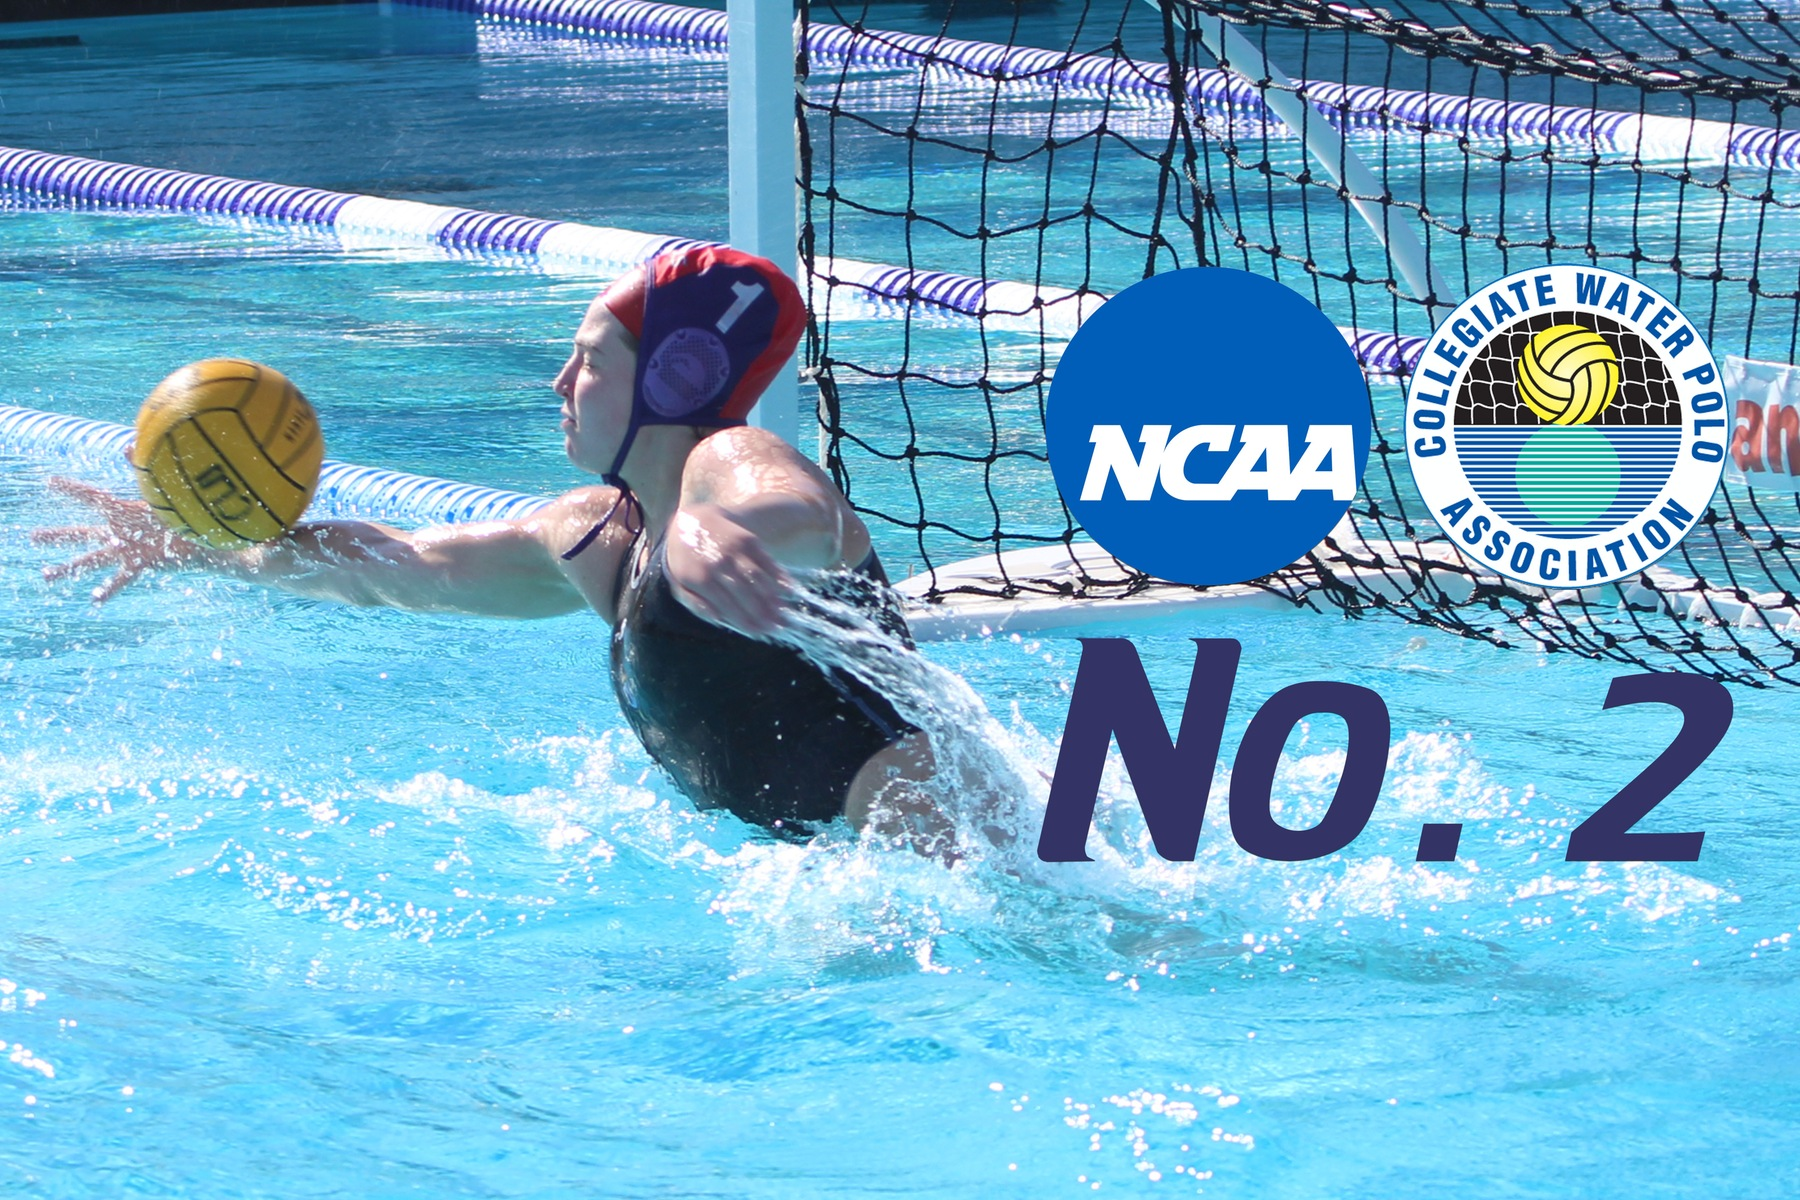 Women's Water Polo No. 2 in NCAA/CWPCA Poll